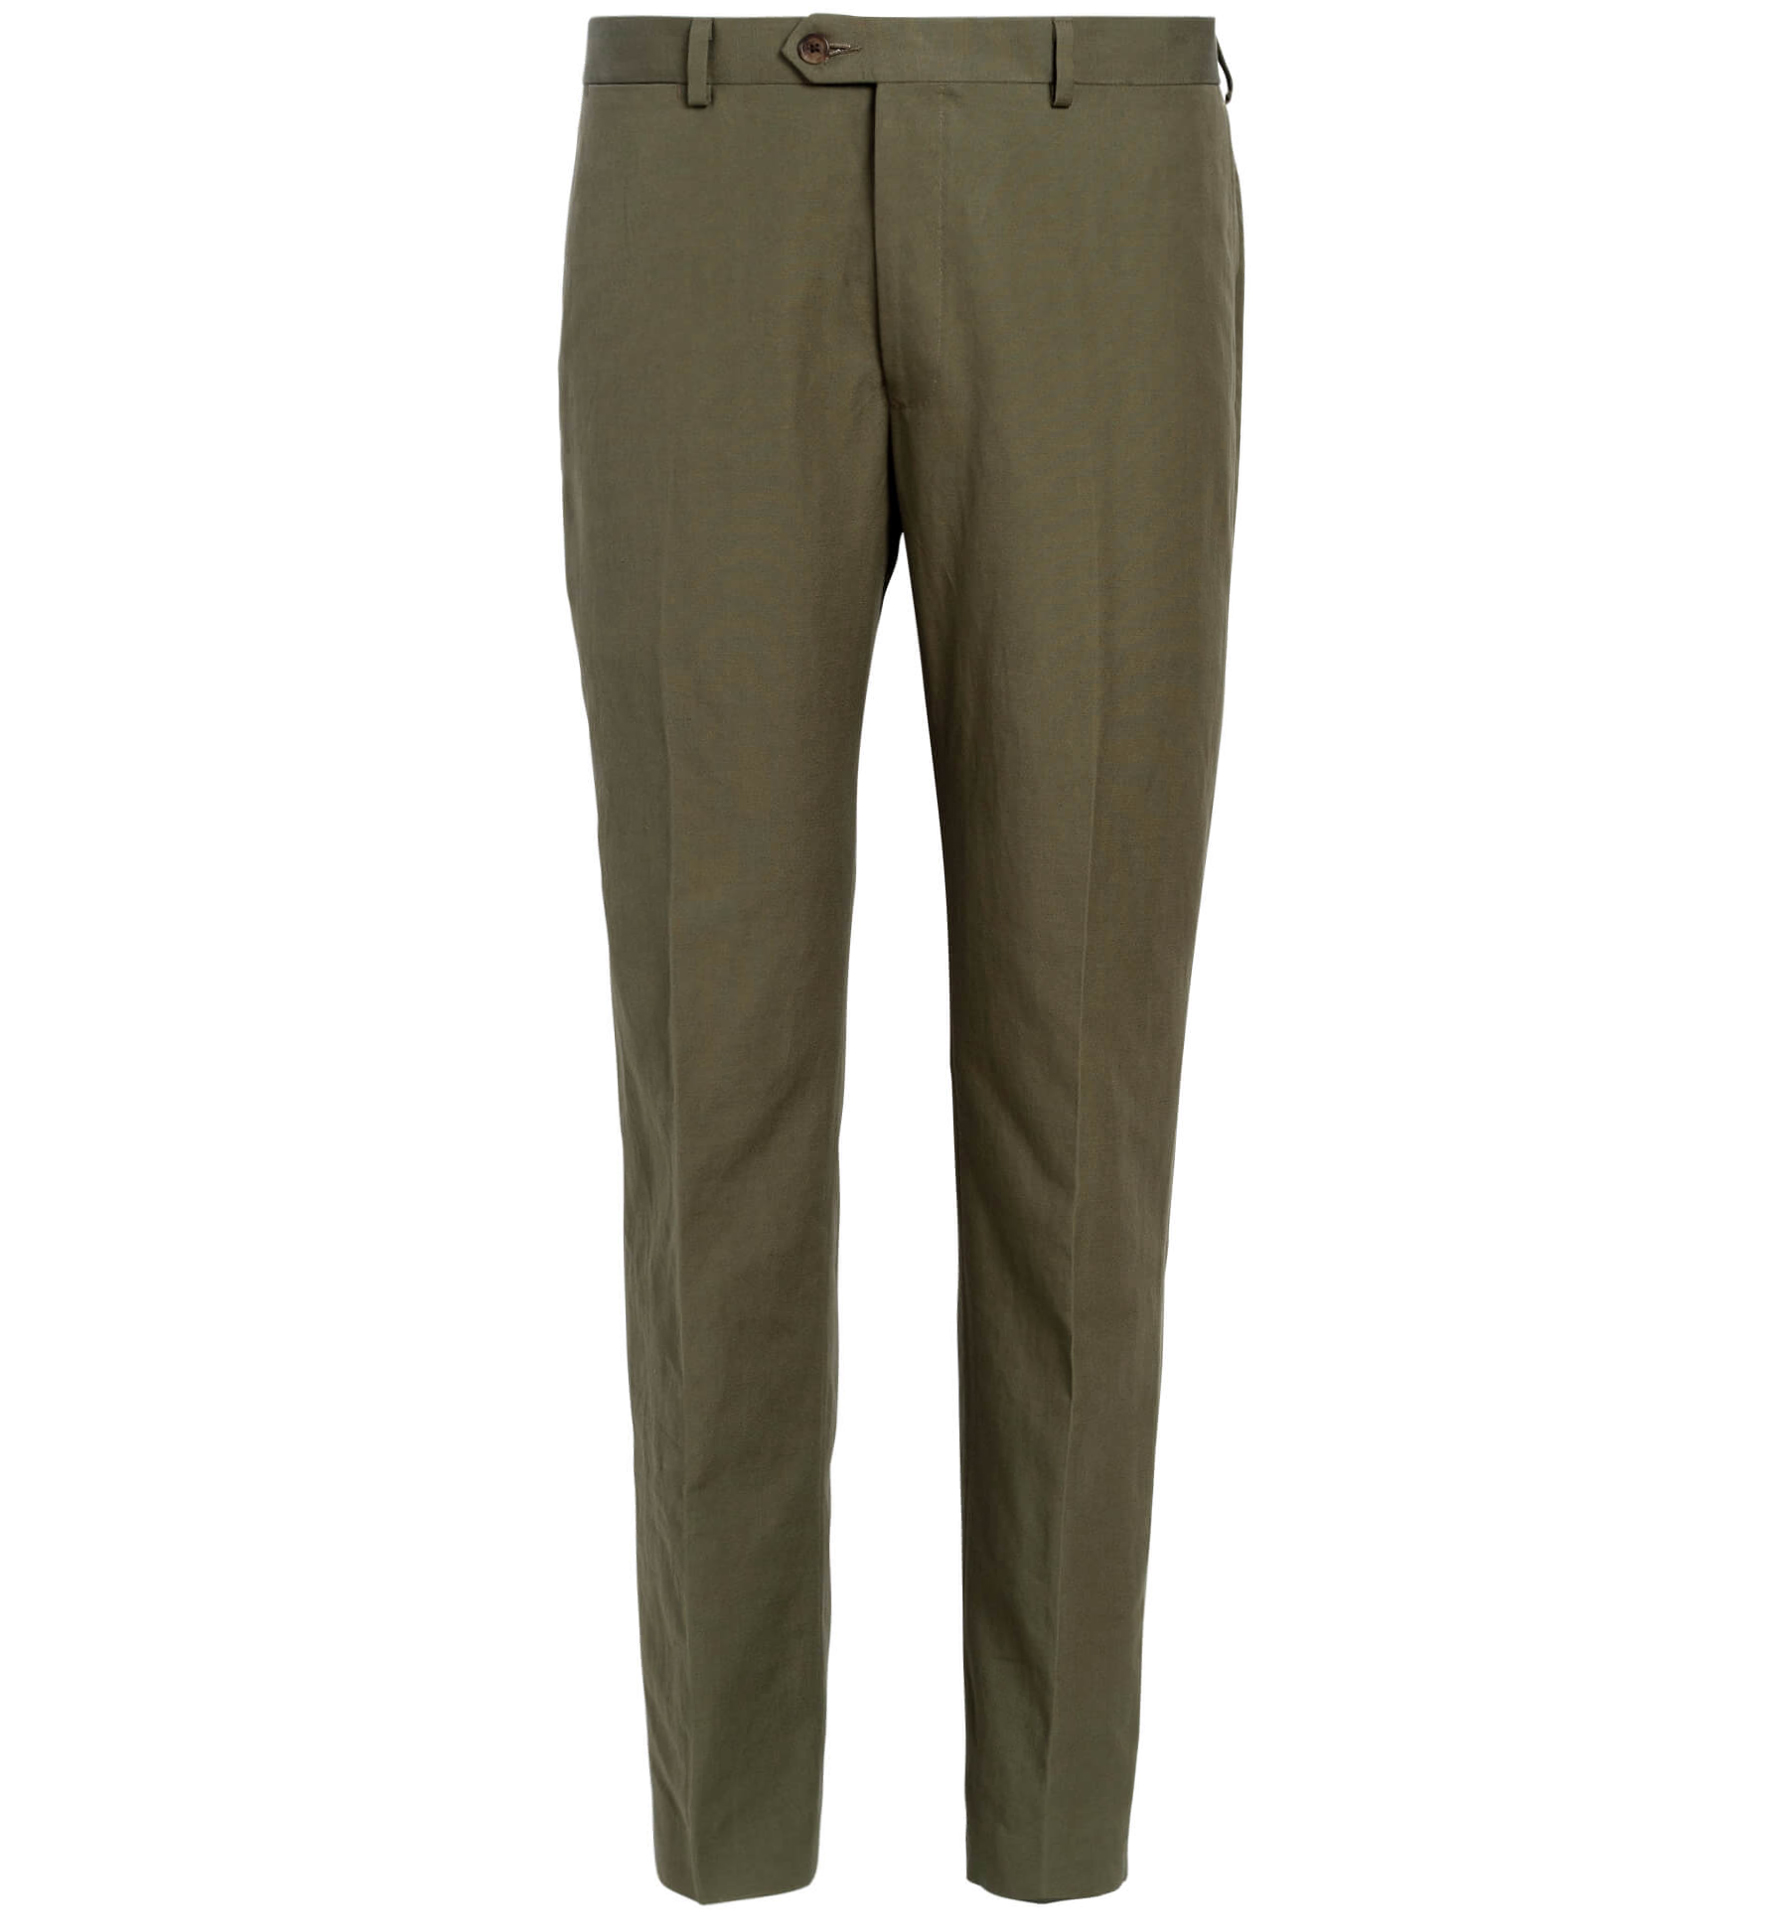 Zoom Image of Allen Olive Cotton and Linen Canvas Trouser